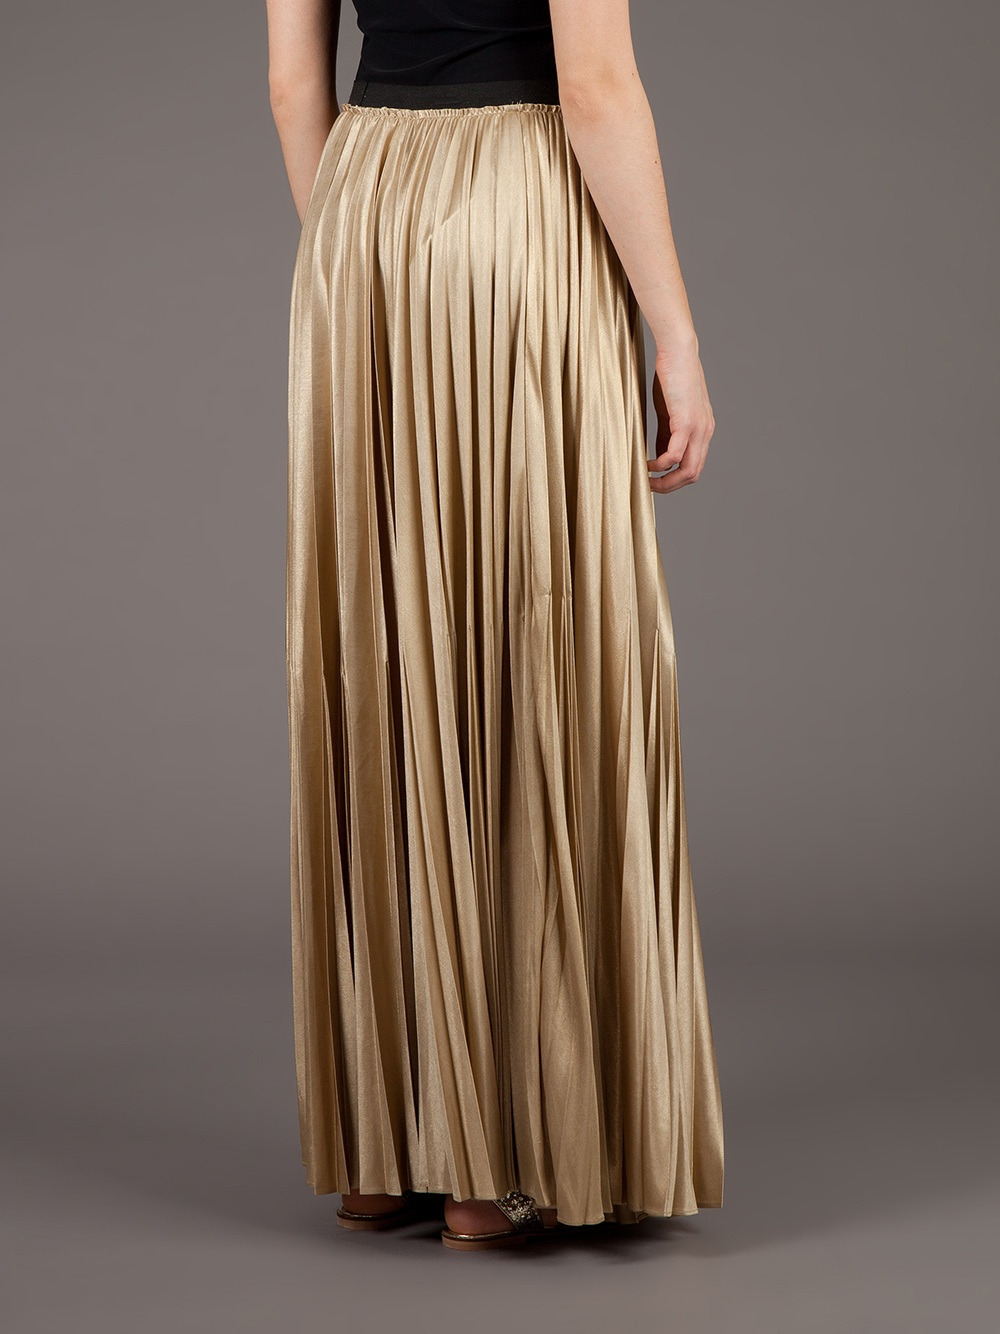 Enza costa Pleated Maxi Skirt in Metallic | Lyst